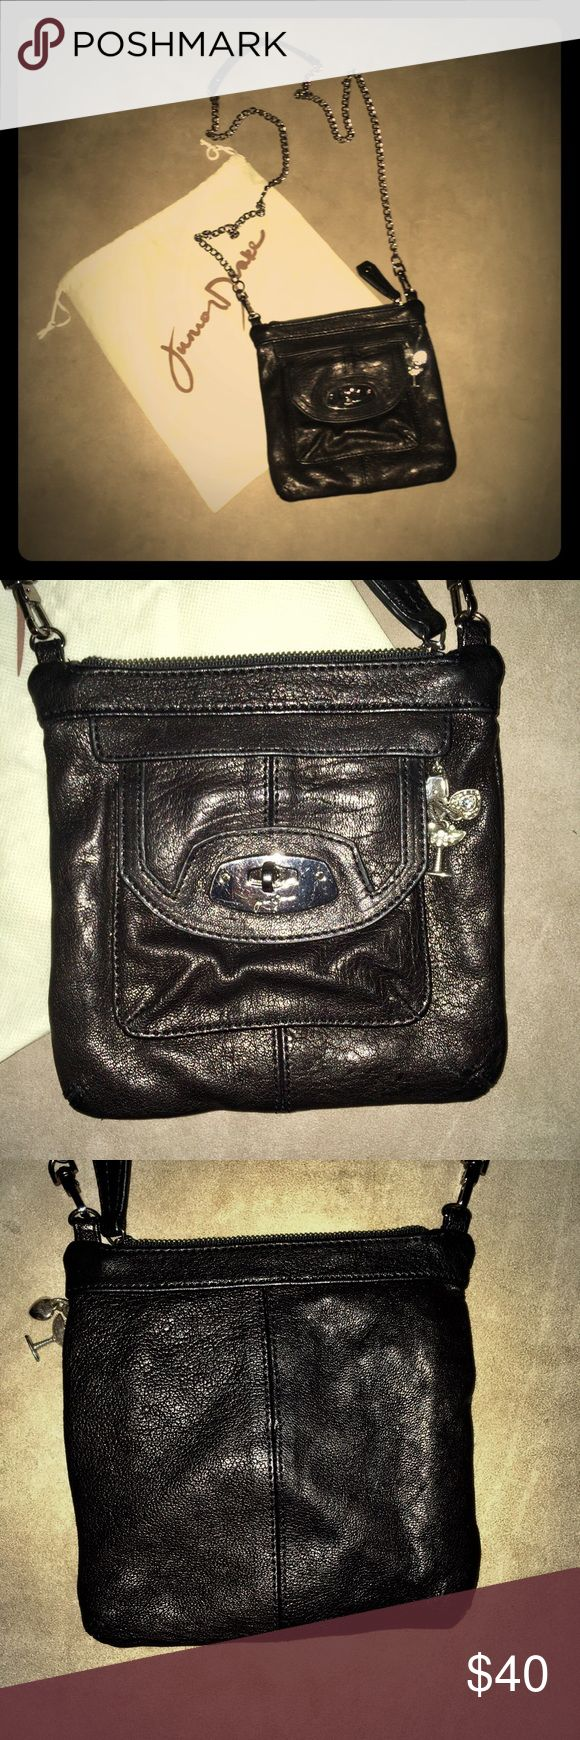 Like new! Junior Drake Leather Chain Strap Bag Like new! Junior Drake black leather crossbody/shoulder silver chain strap small sized bag w/ satin liner in an excellent (barely) used condition. Dustbag included. Junior Drake Bags Mini Bags